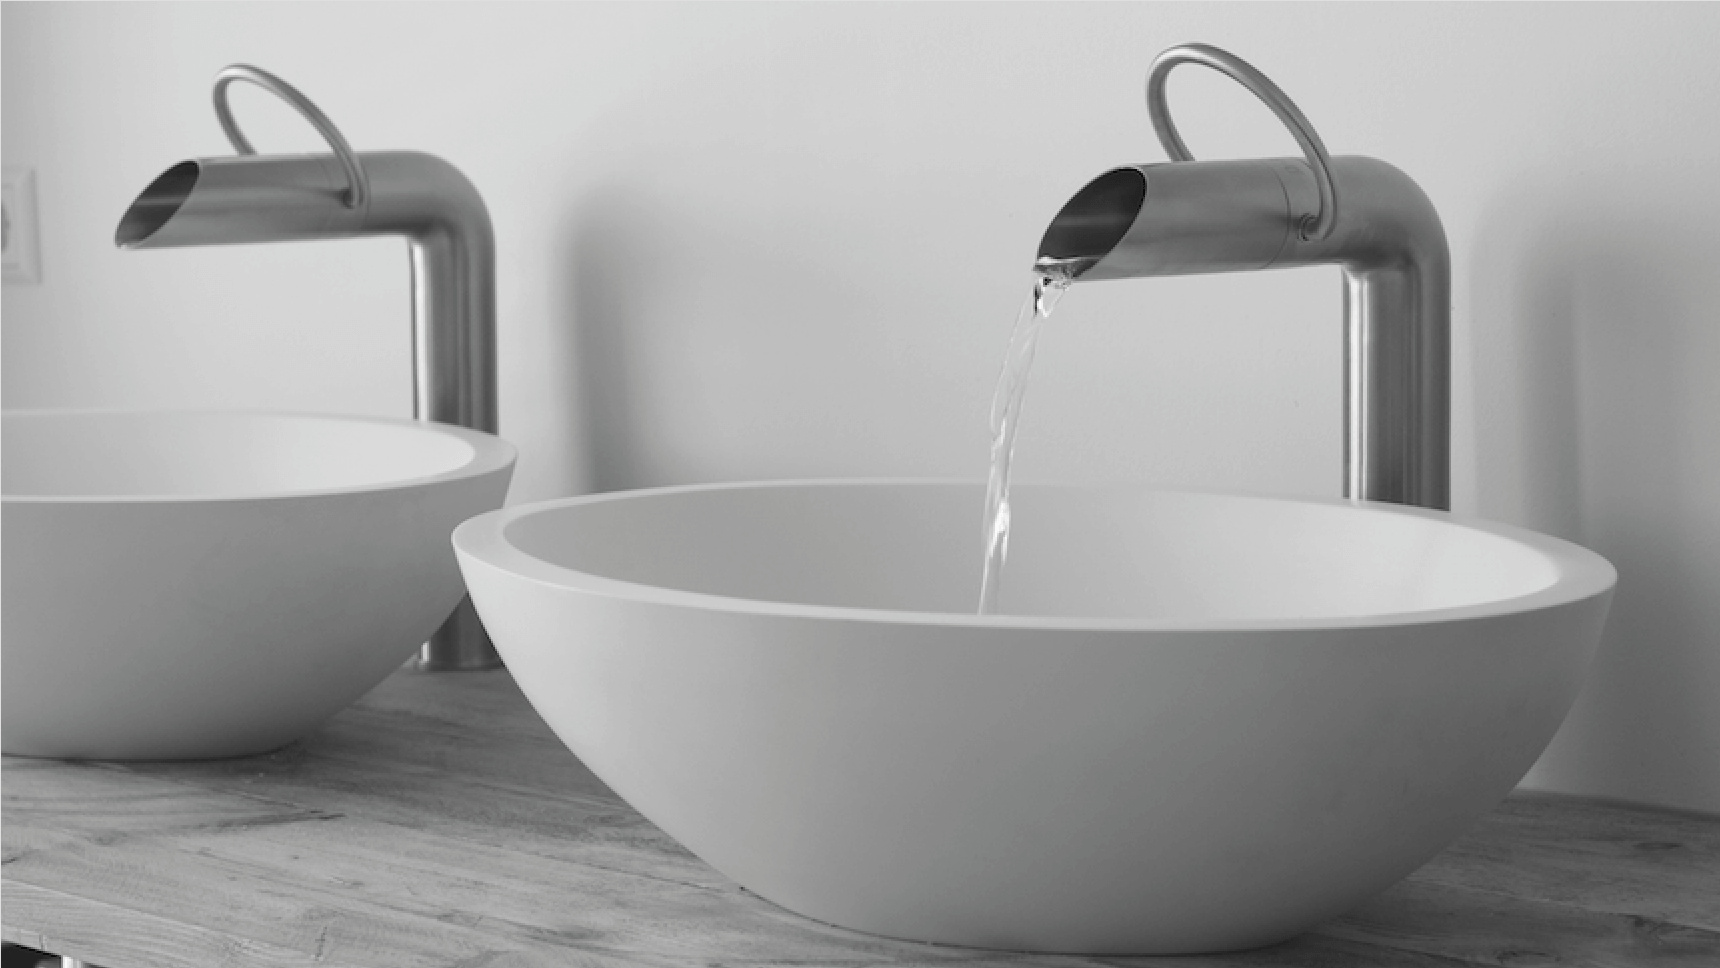 JEE-O is C.P. Hart's new contemporary brassware